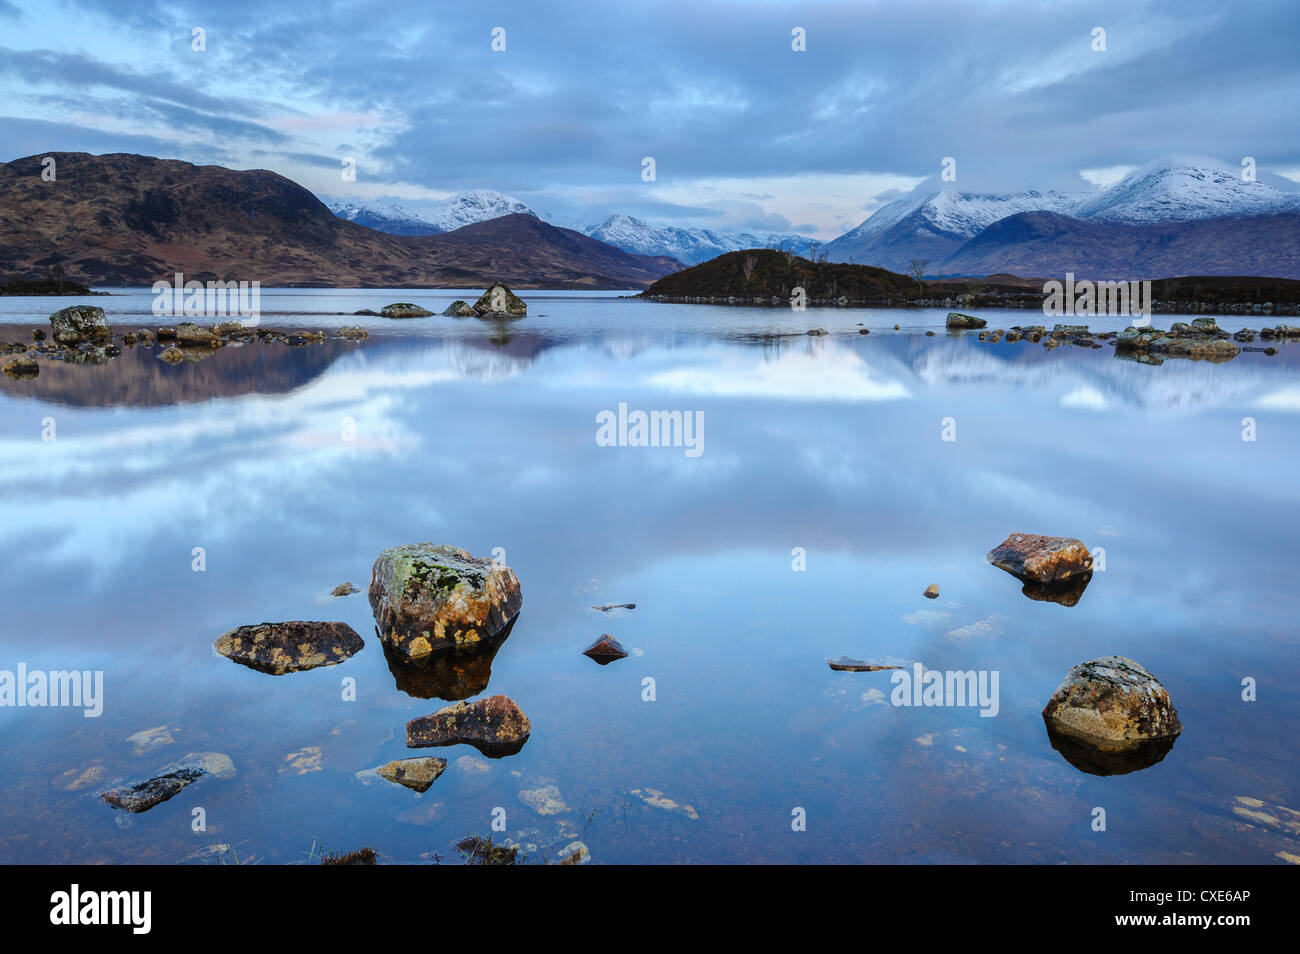 Snow covered mountains at dawn, Lochan na h Achlaise, Rannoch Moor, Argyll and Bute, Highlands, Scotland - Stock Image